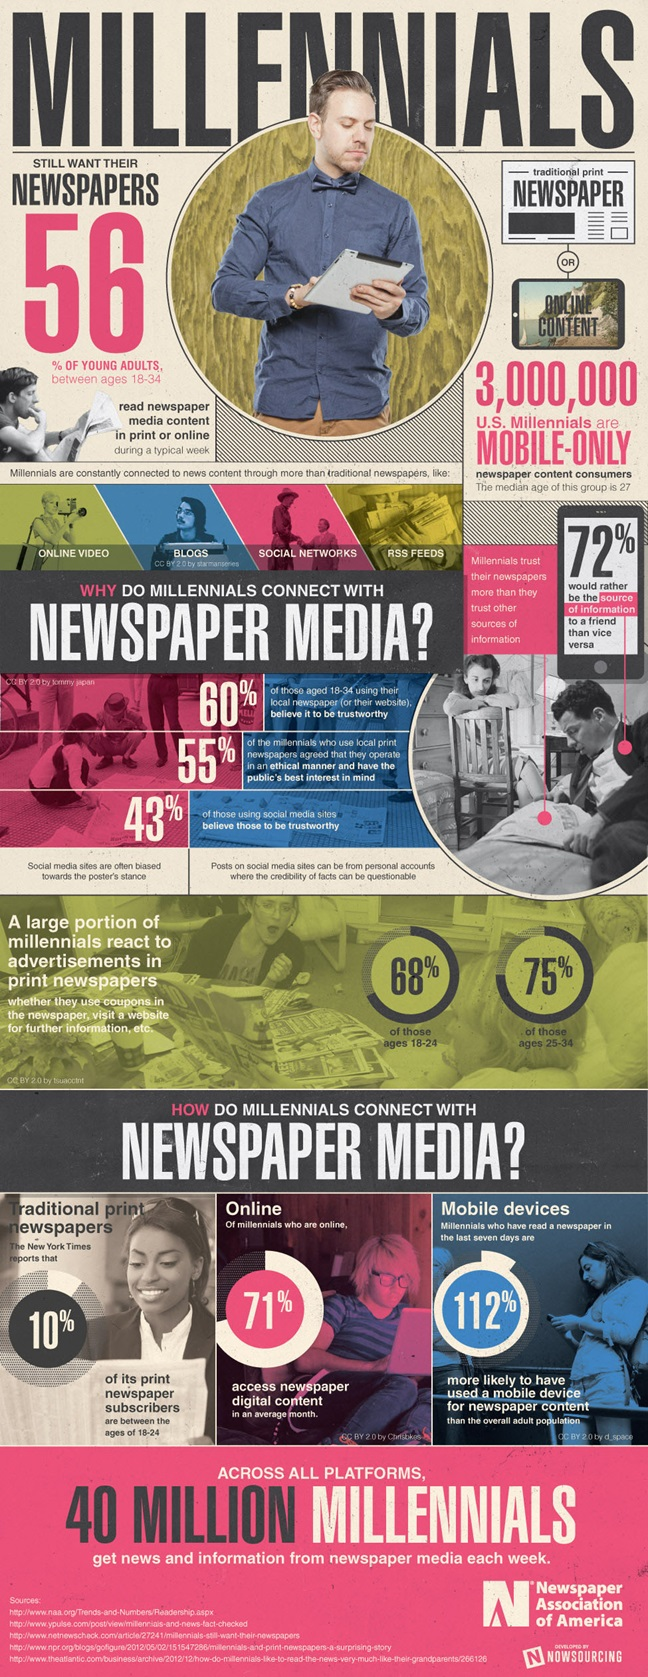 Millennials Still Want Their Newspapers